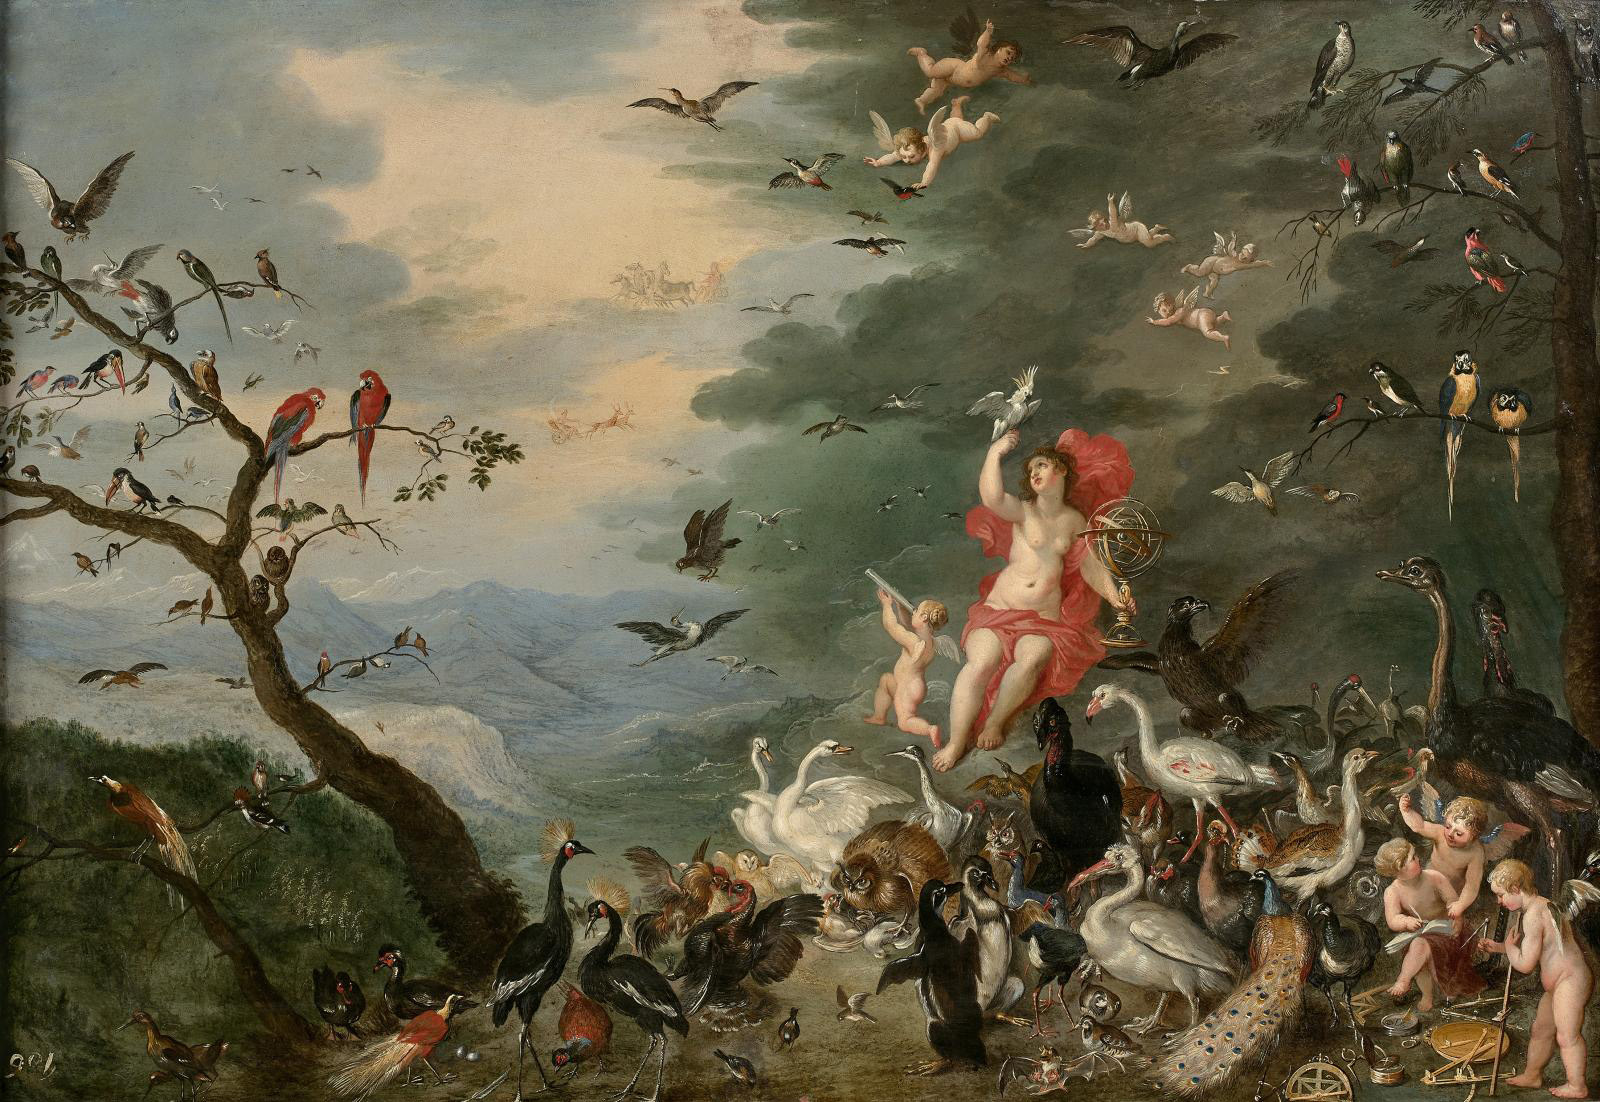 Air by Jan Bruegel the Younger in collaboration with Hendrick Van Balen (1575-1632), 45 x 67 cm (17.71 x 26.37 in).